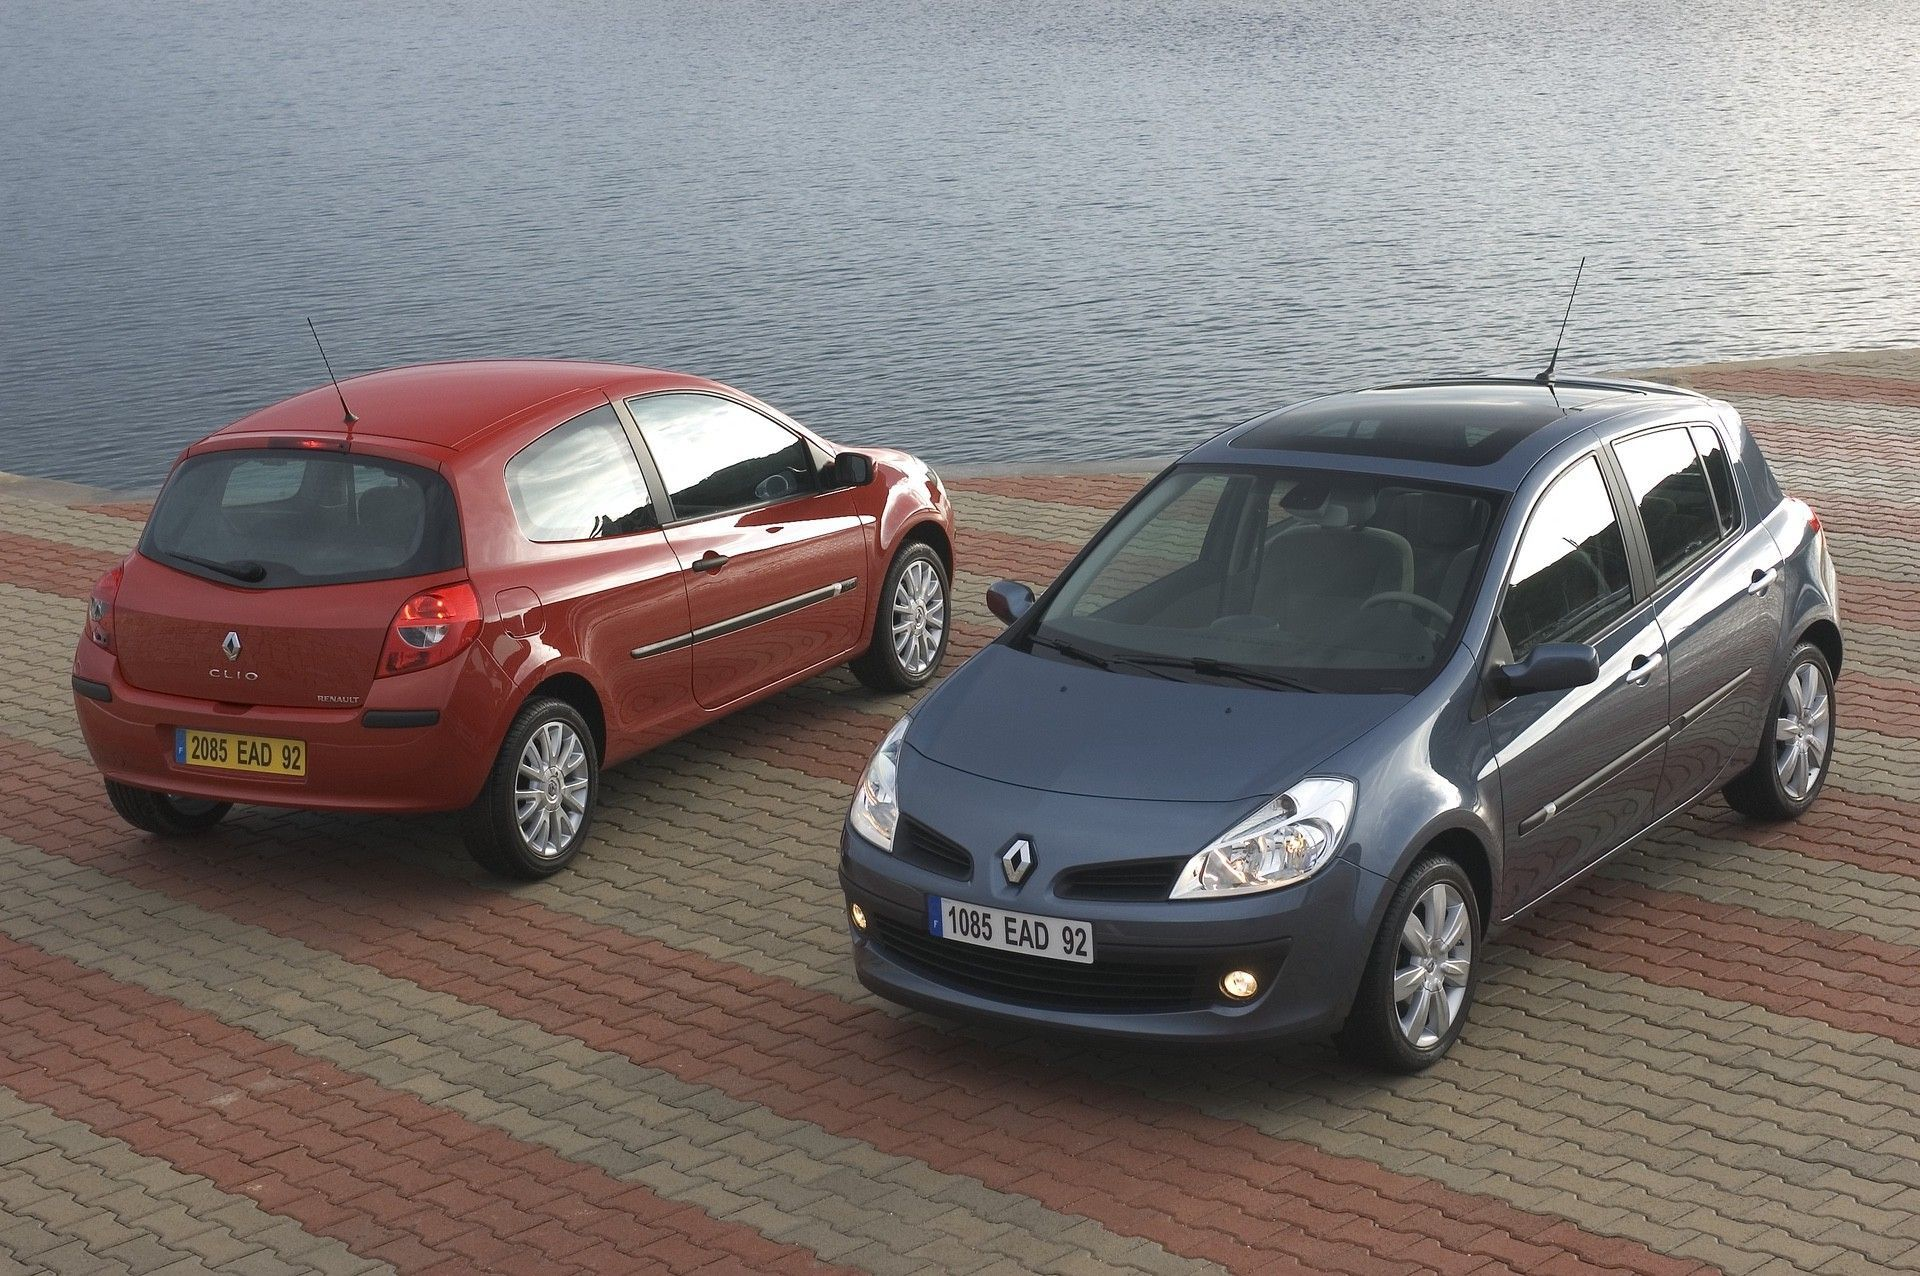 2020-30-years-of-Renault-CLIO-Renault-CLIO-III-2005-2012-10